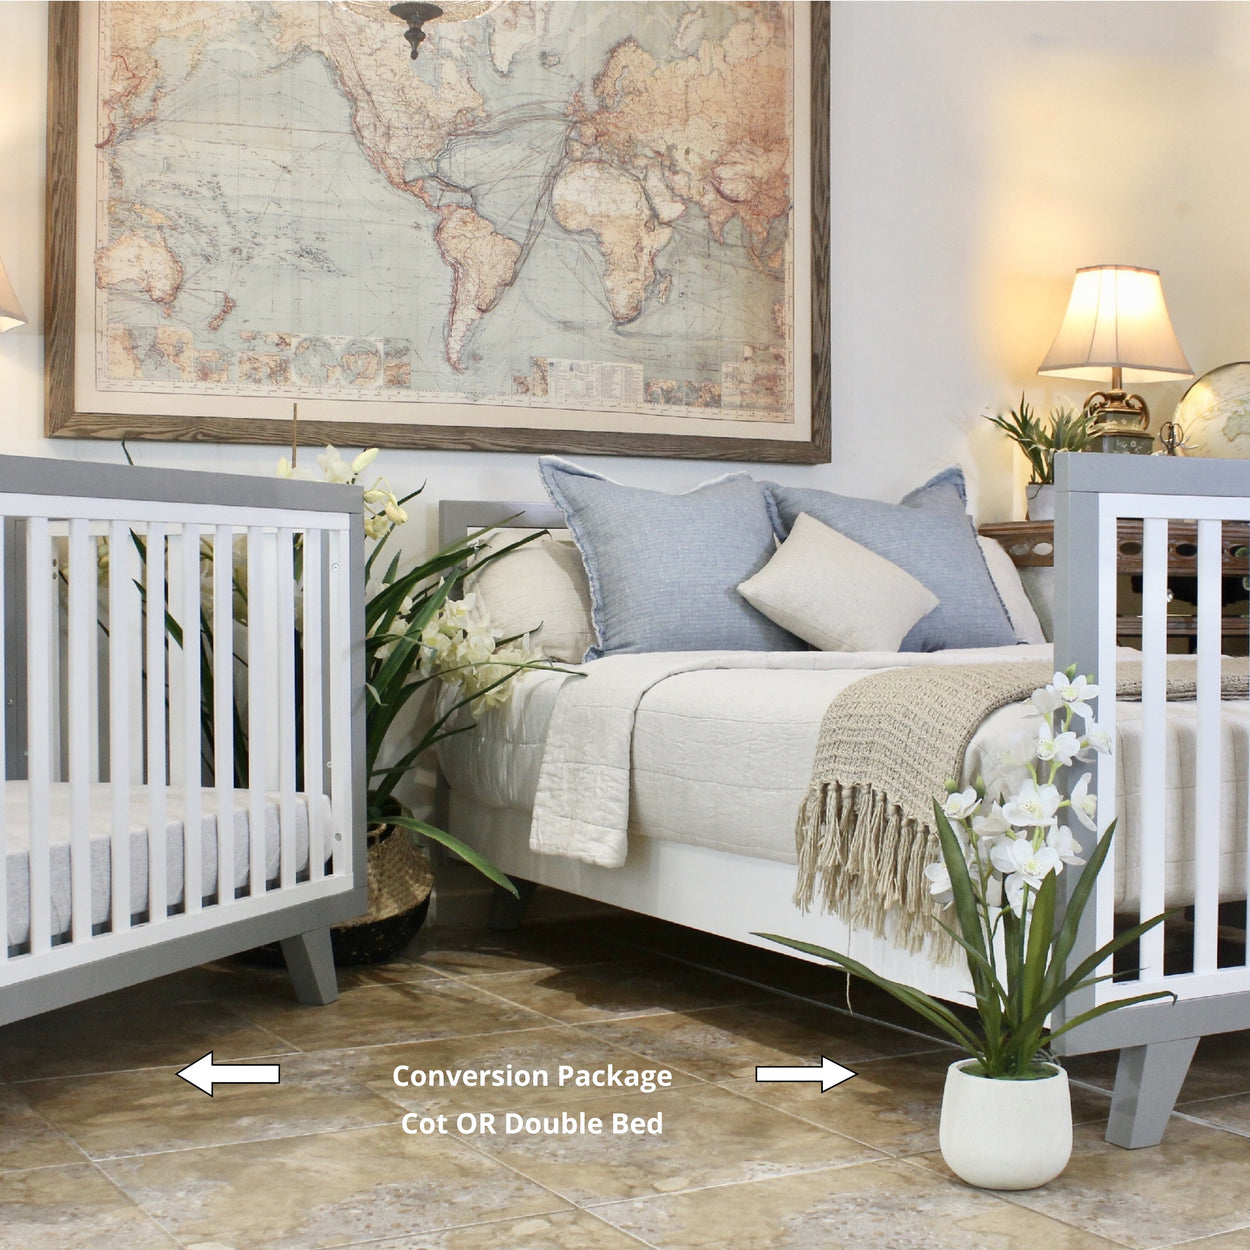 Chelsea Conversion Package Grey - Turn your Dream Nursery into a Dream Bedroom  -  Includes Chelsea Cot + Double Bed Extension Kit.